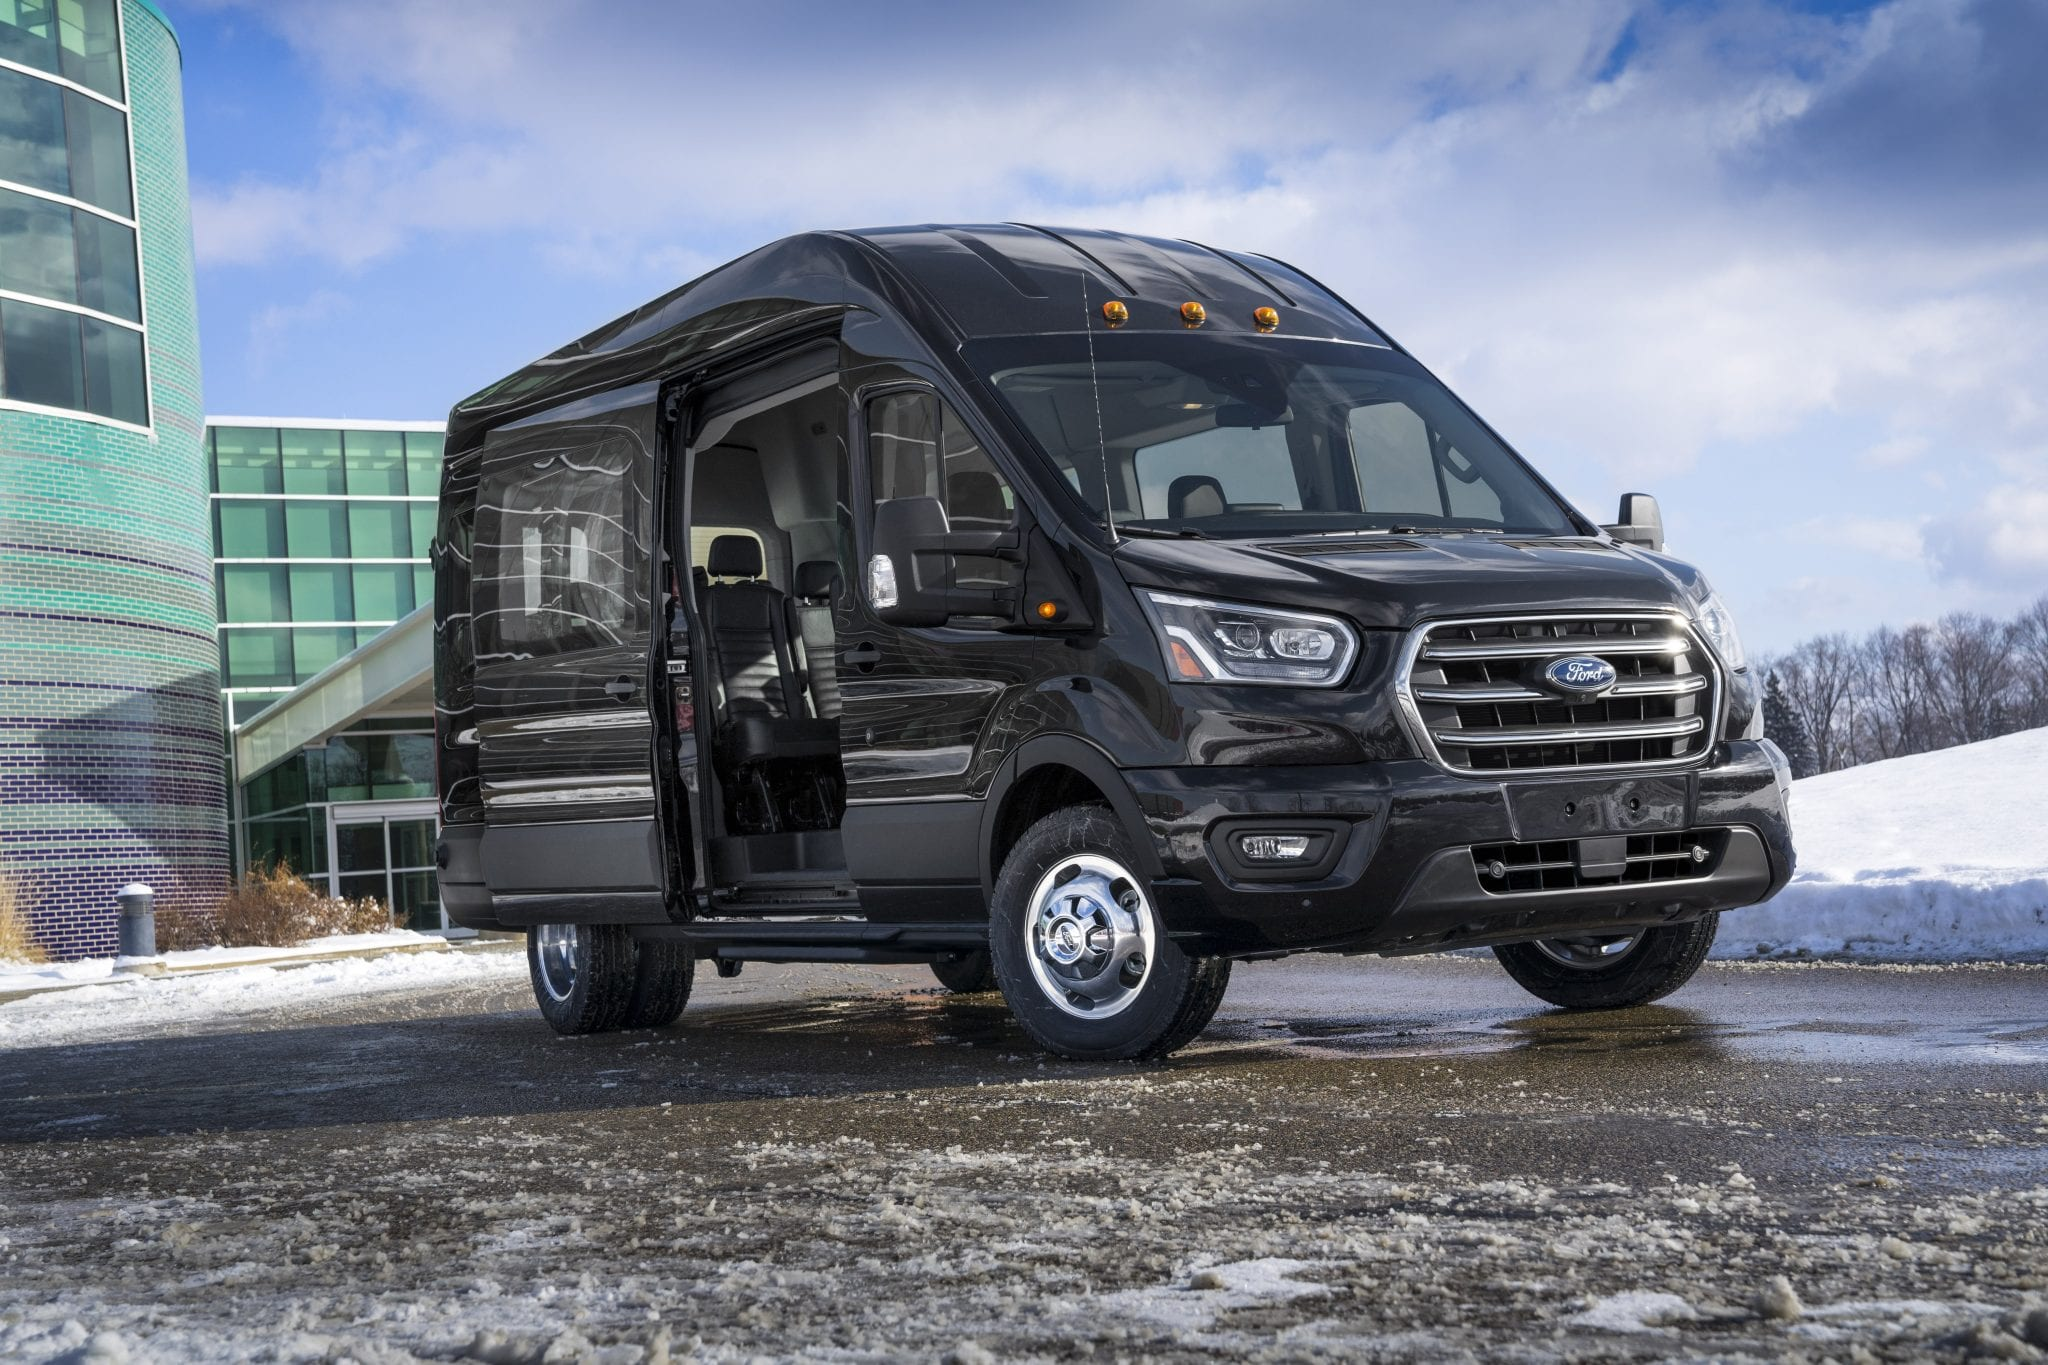 Best Vans 2020 2020 Ford Transit Van Gets Facelift, More Tech, & All Wheel Drive